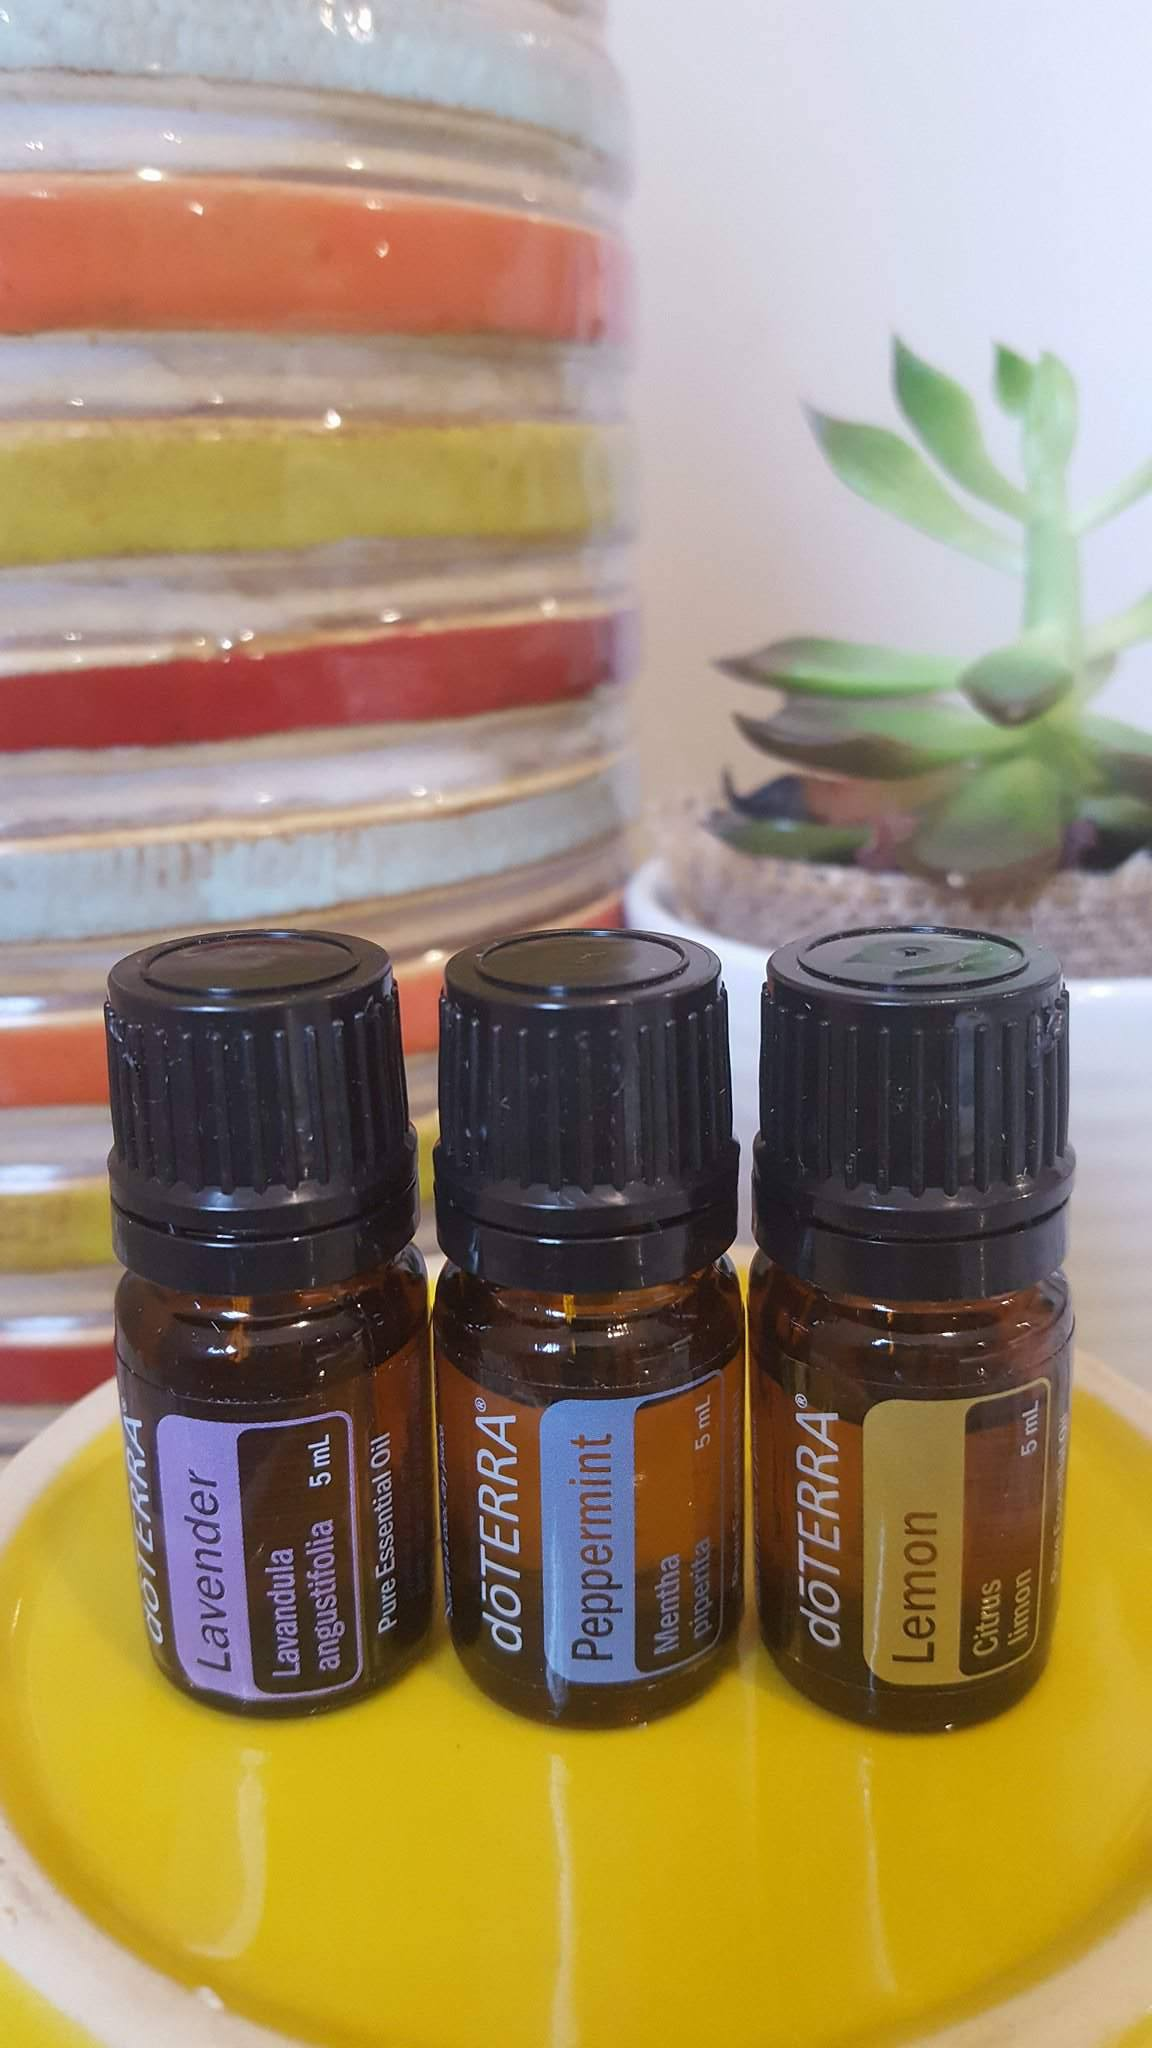 Enhance your household with the power of essential oils. Enter this giveaway for your chance to start using these!